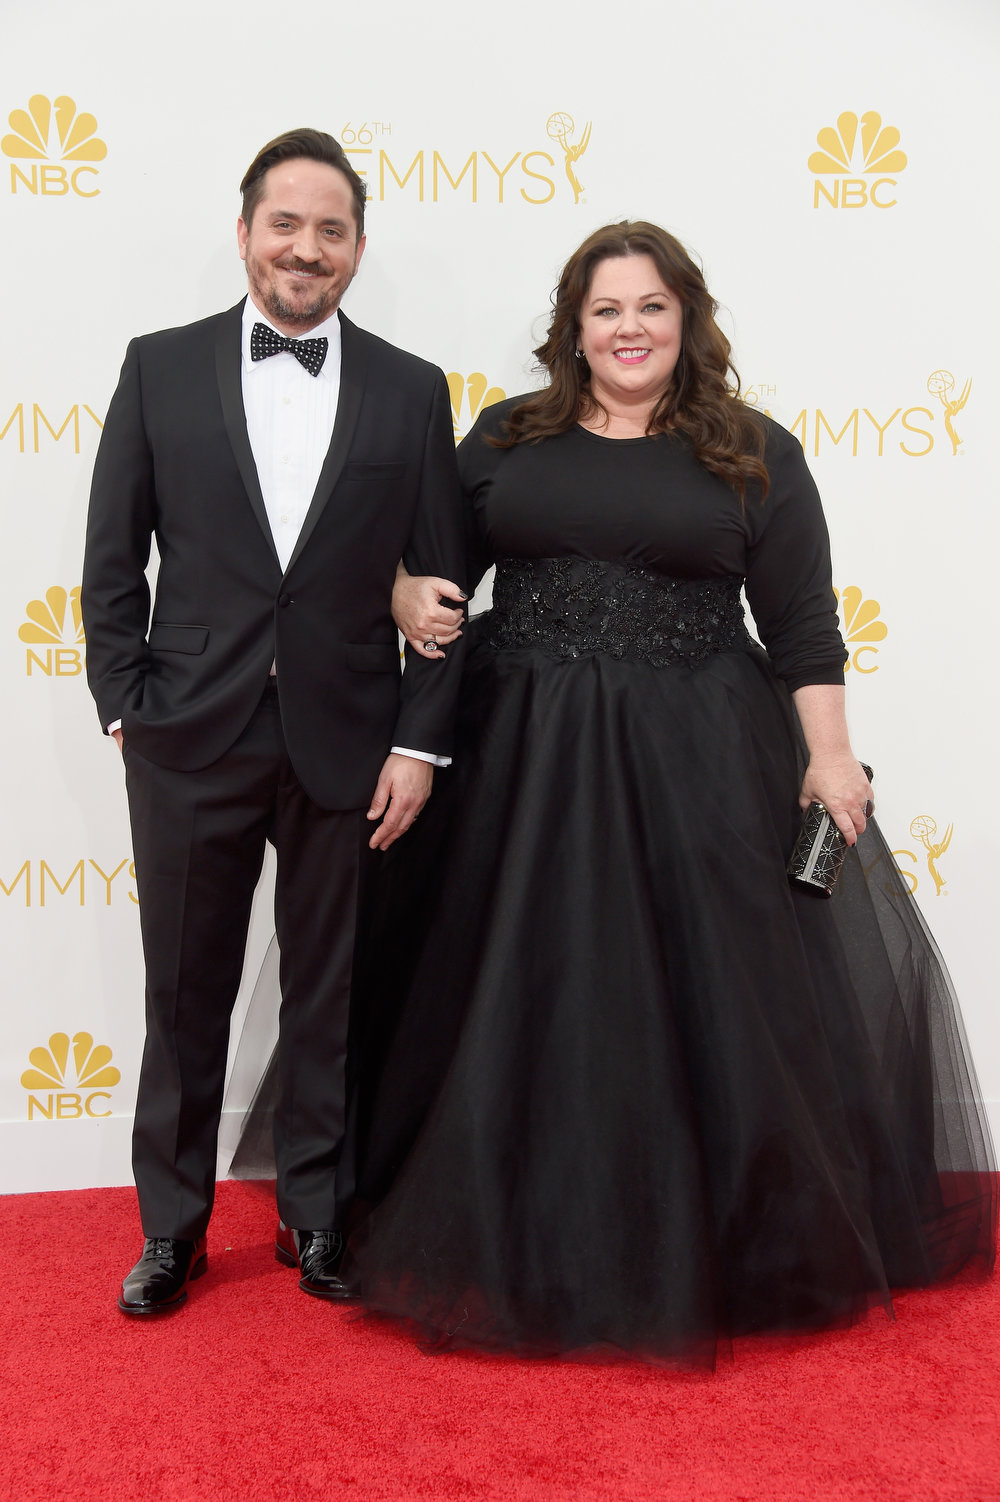 . Actors Ben Falcone (L) and Melissa McCarthy attend the 66th Annual Primetime Emmy Awards held at Nokia Theatre L.A. Live on August 25, 2014 in Los Angeles, California.  (Photo by Frazer Harrison/Getty Images)